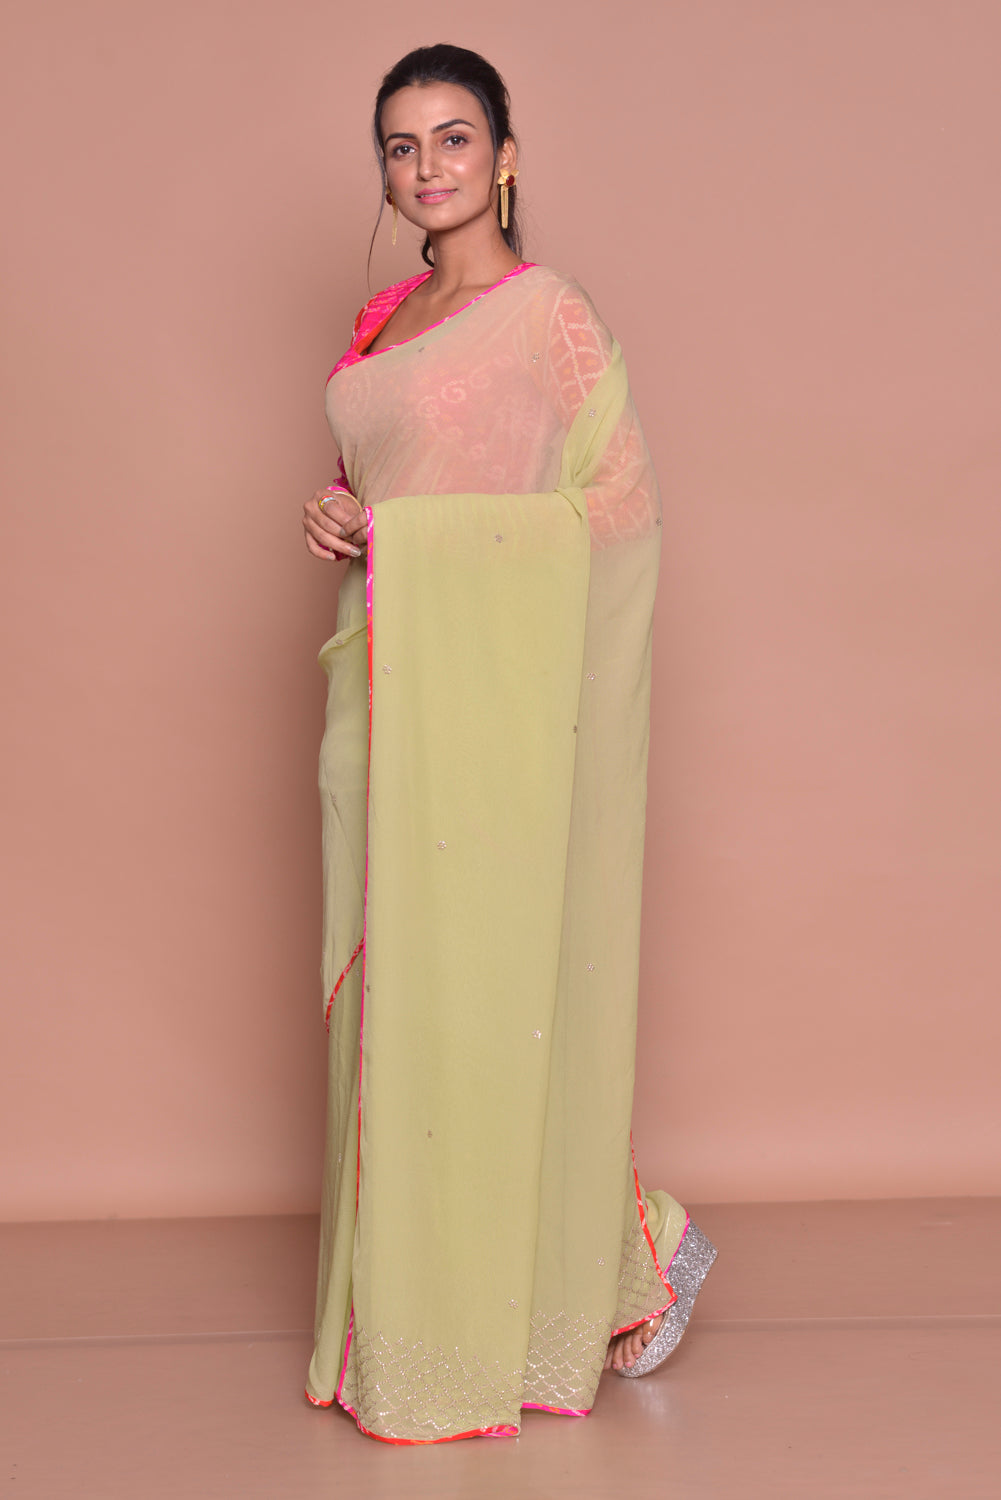 Buy pistachio green embroidered sari online in USA with pink bandhej saree blouse. Be occasion ready with exquisite range of designer sarees with blouse, bridal sarees from Pure Elegance Indian boutique in USA.-side